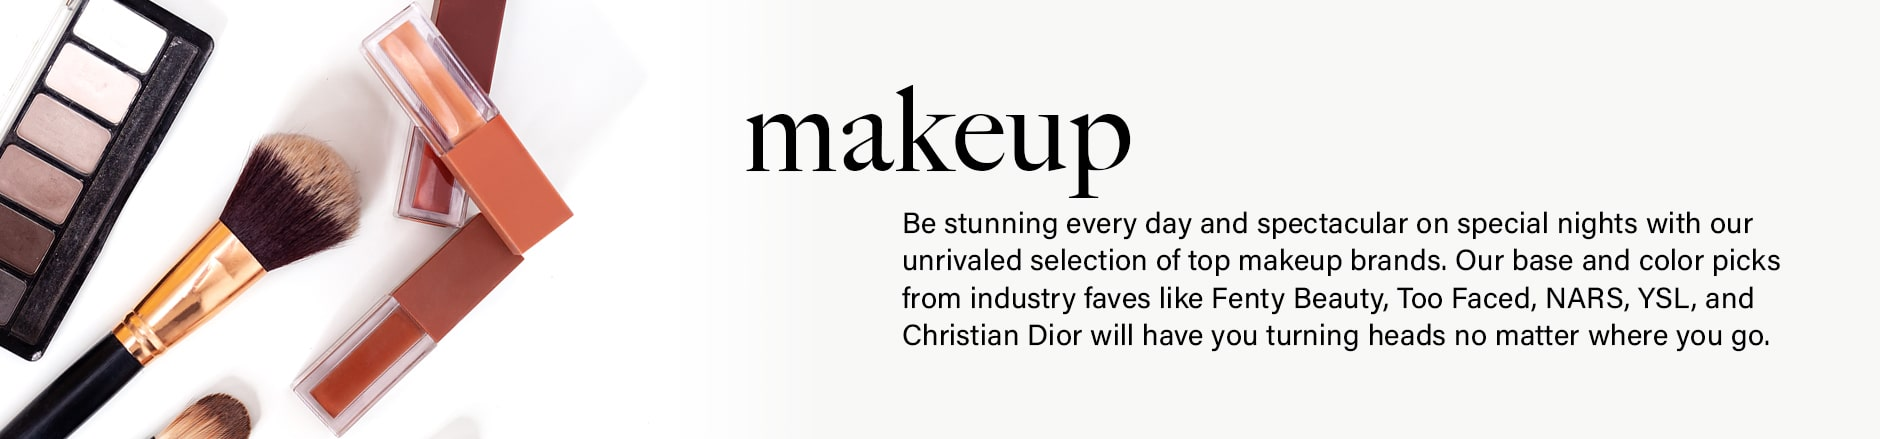 makeup-collection-page-banner